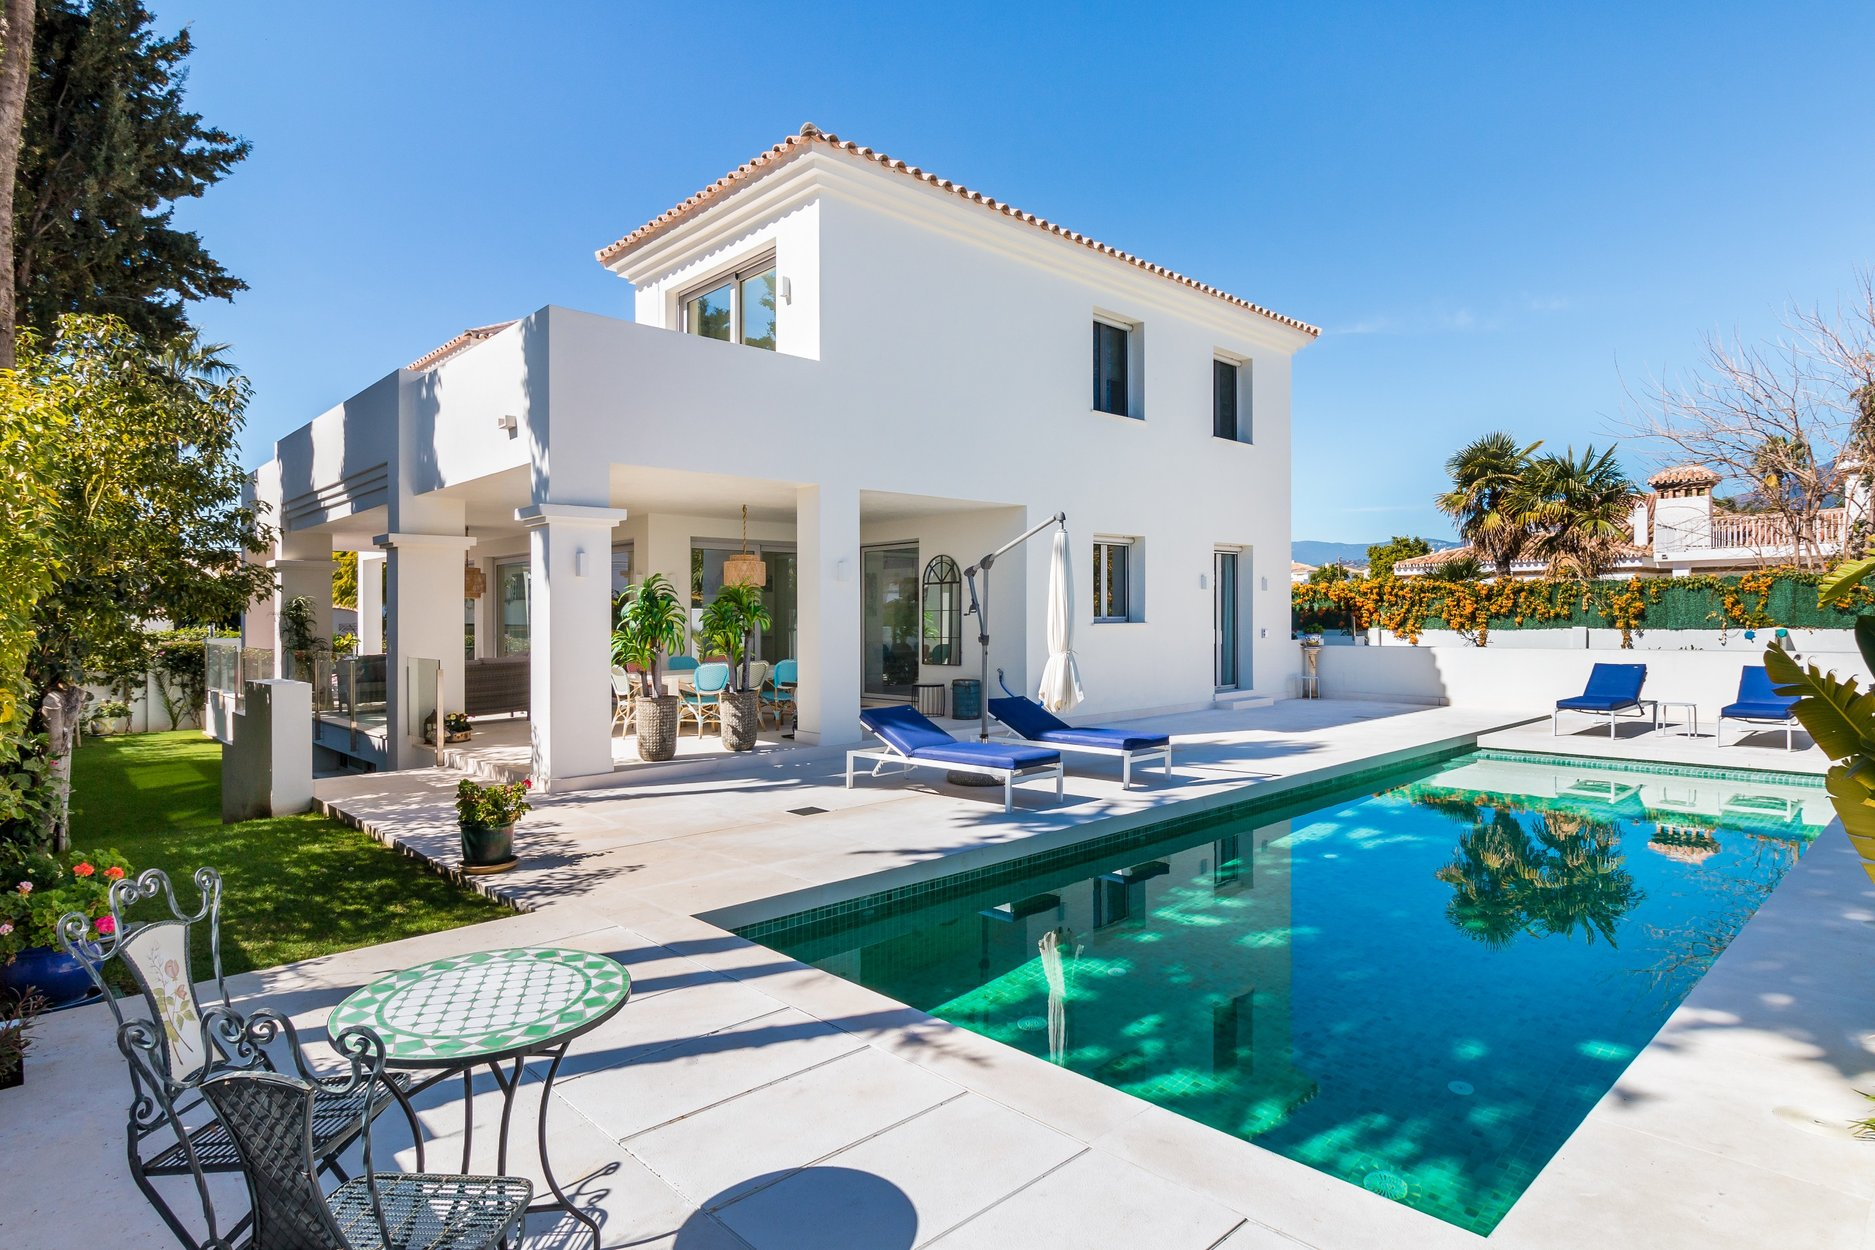 Villa for sale in Cortijo Blanco